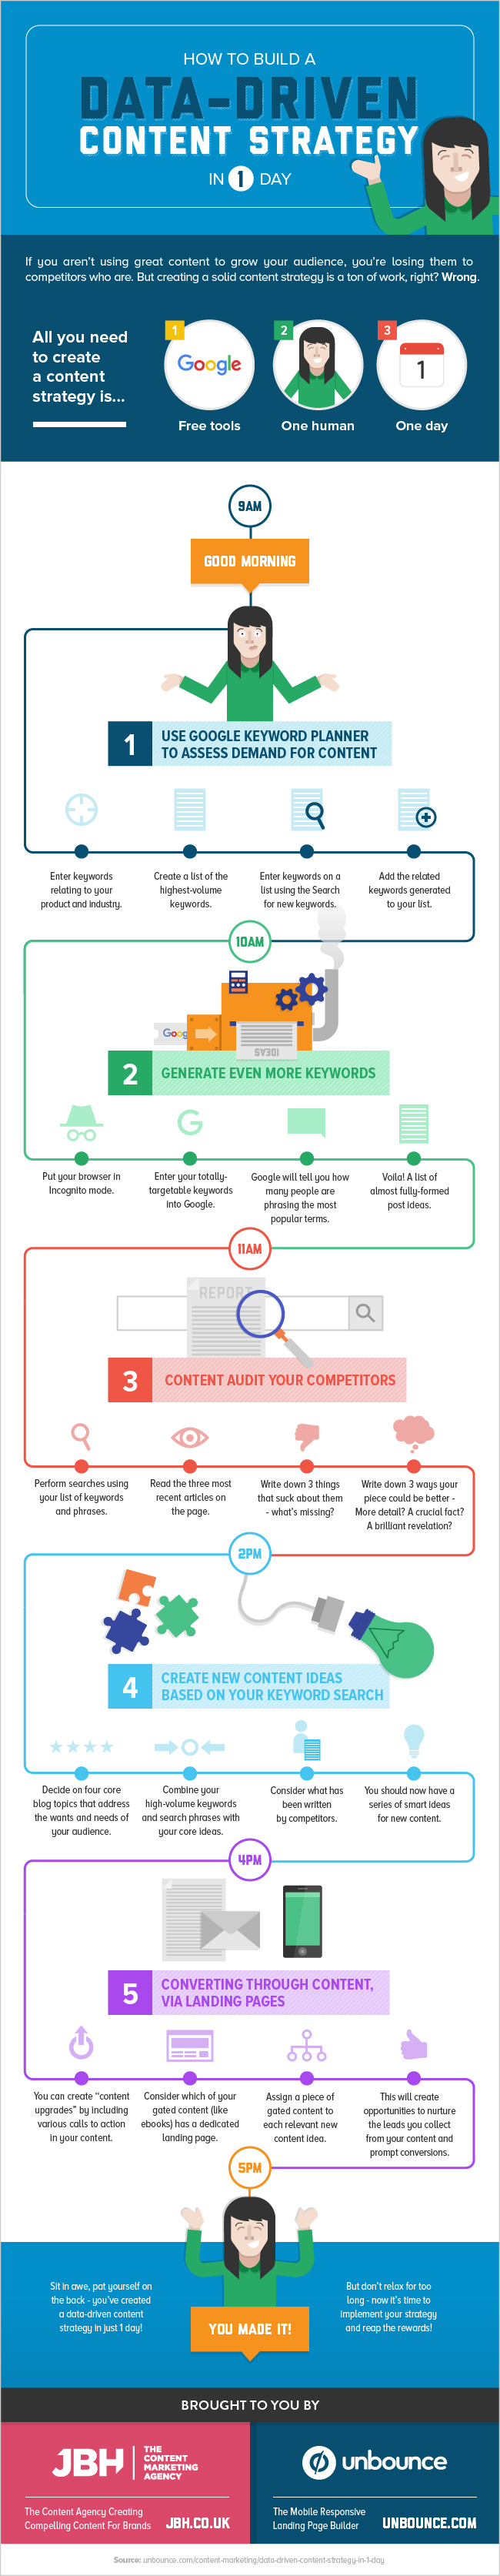 Infographic outlines a simple content strategy